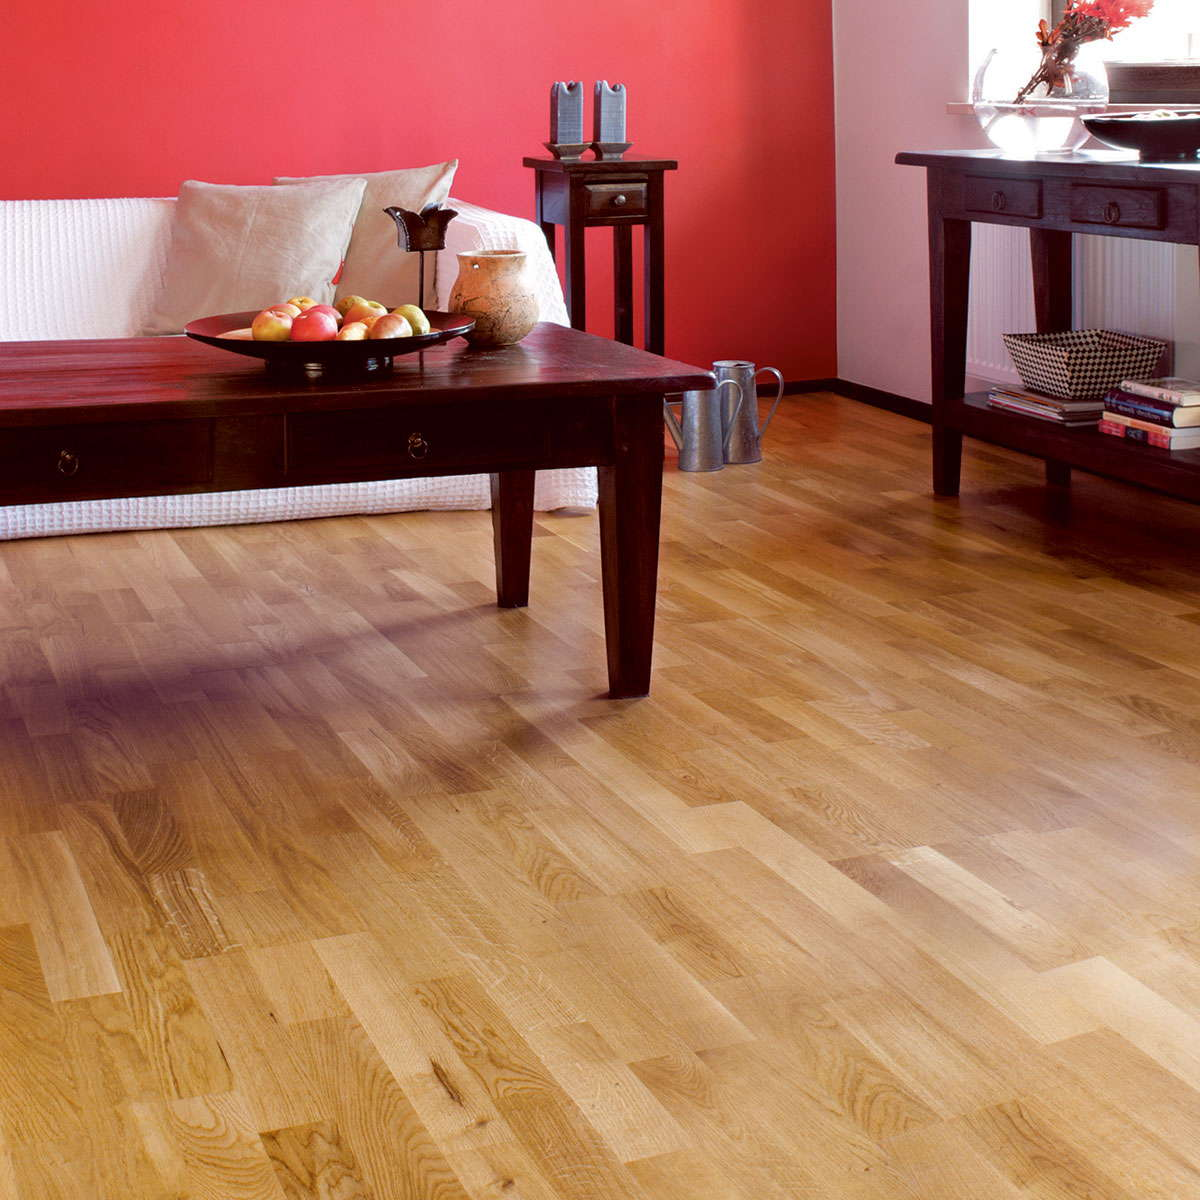 Natura oak brooklyn engineered wood flooring for Real wood flooring